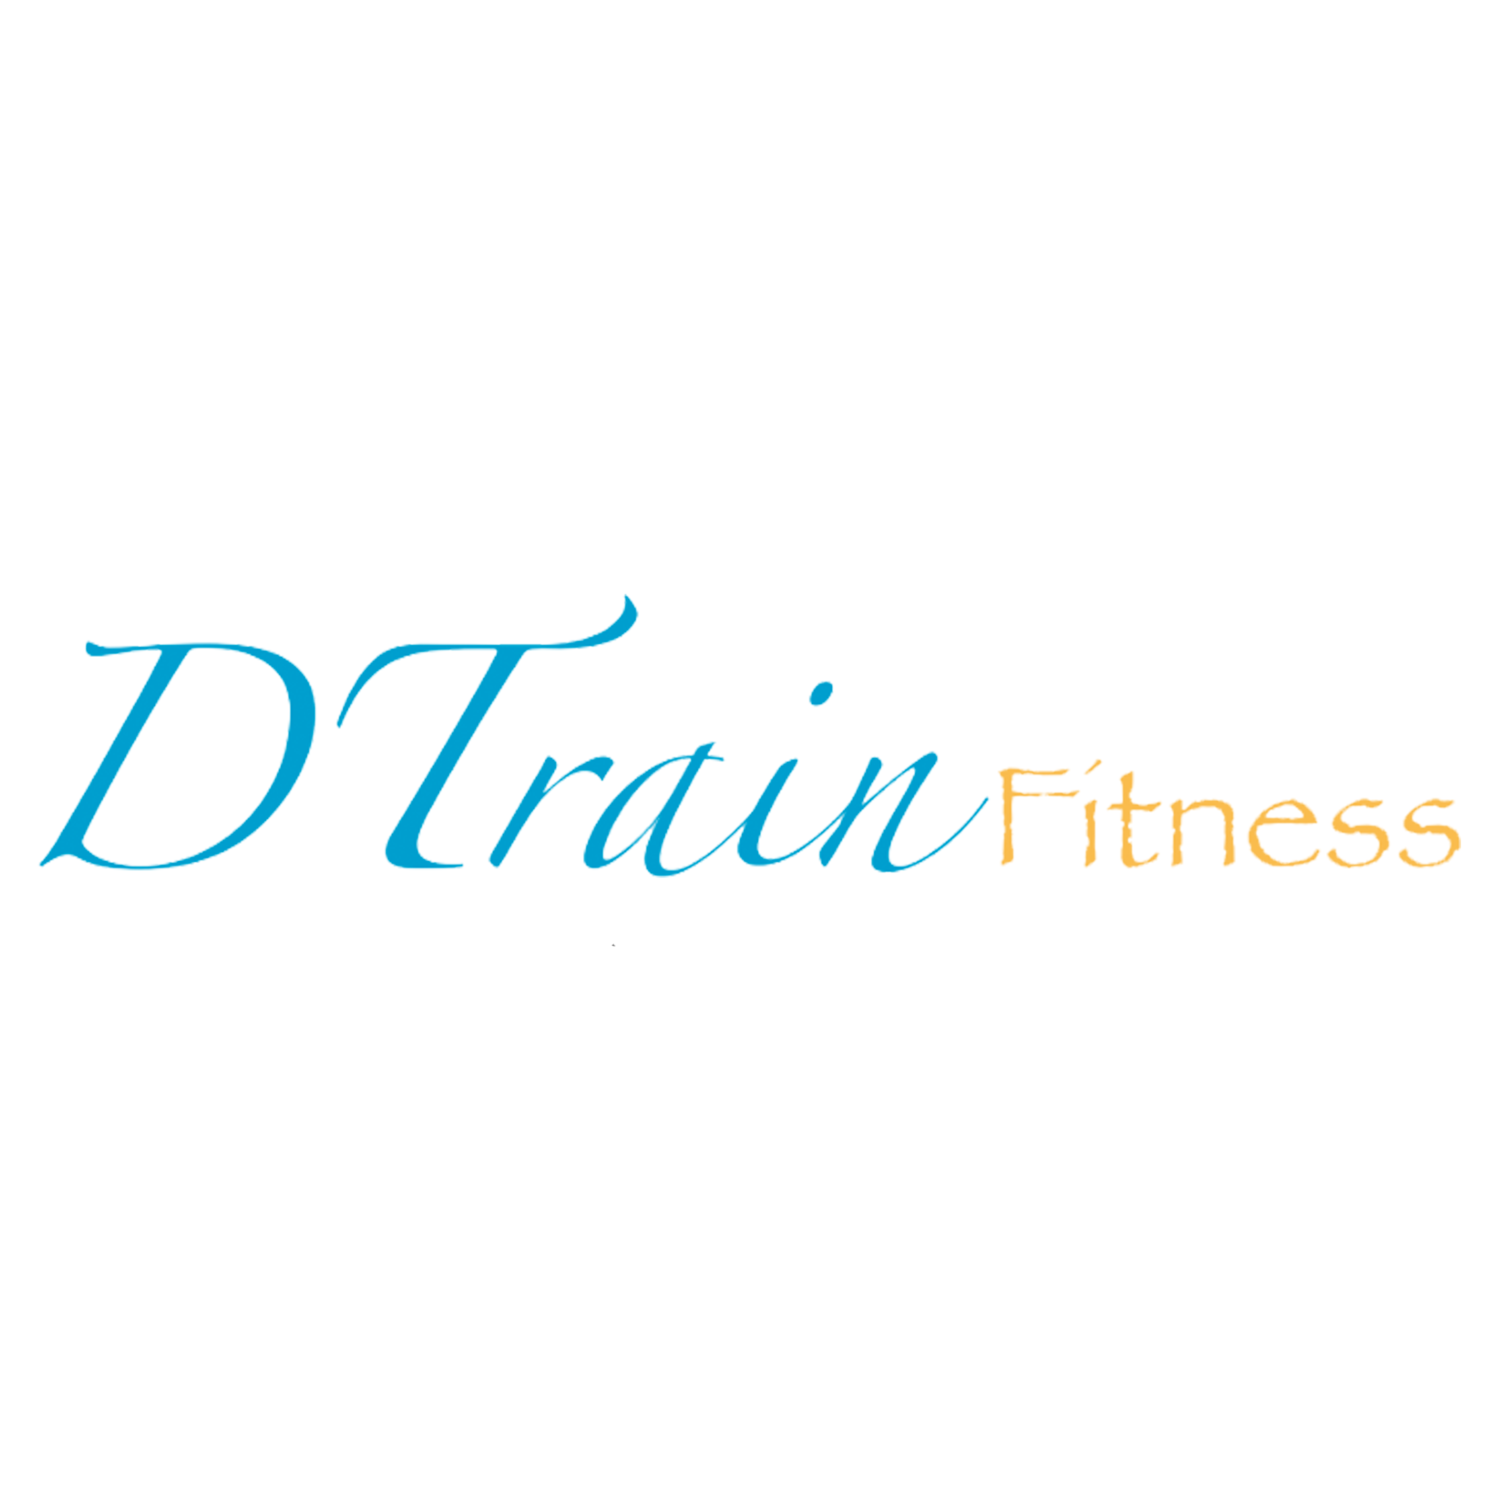 DTrain Fitness image 10